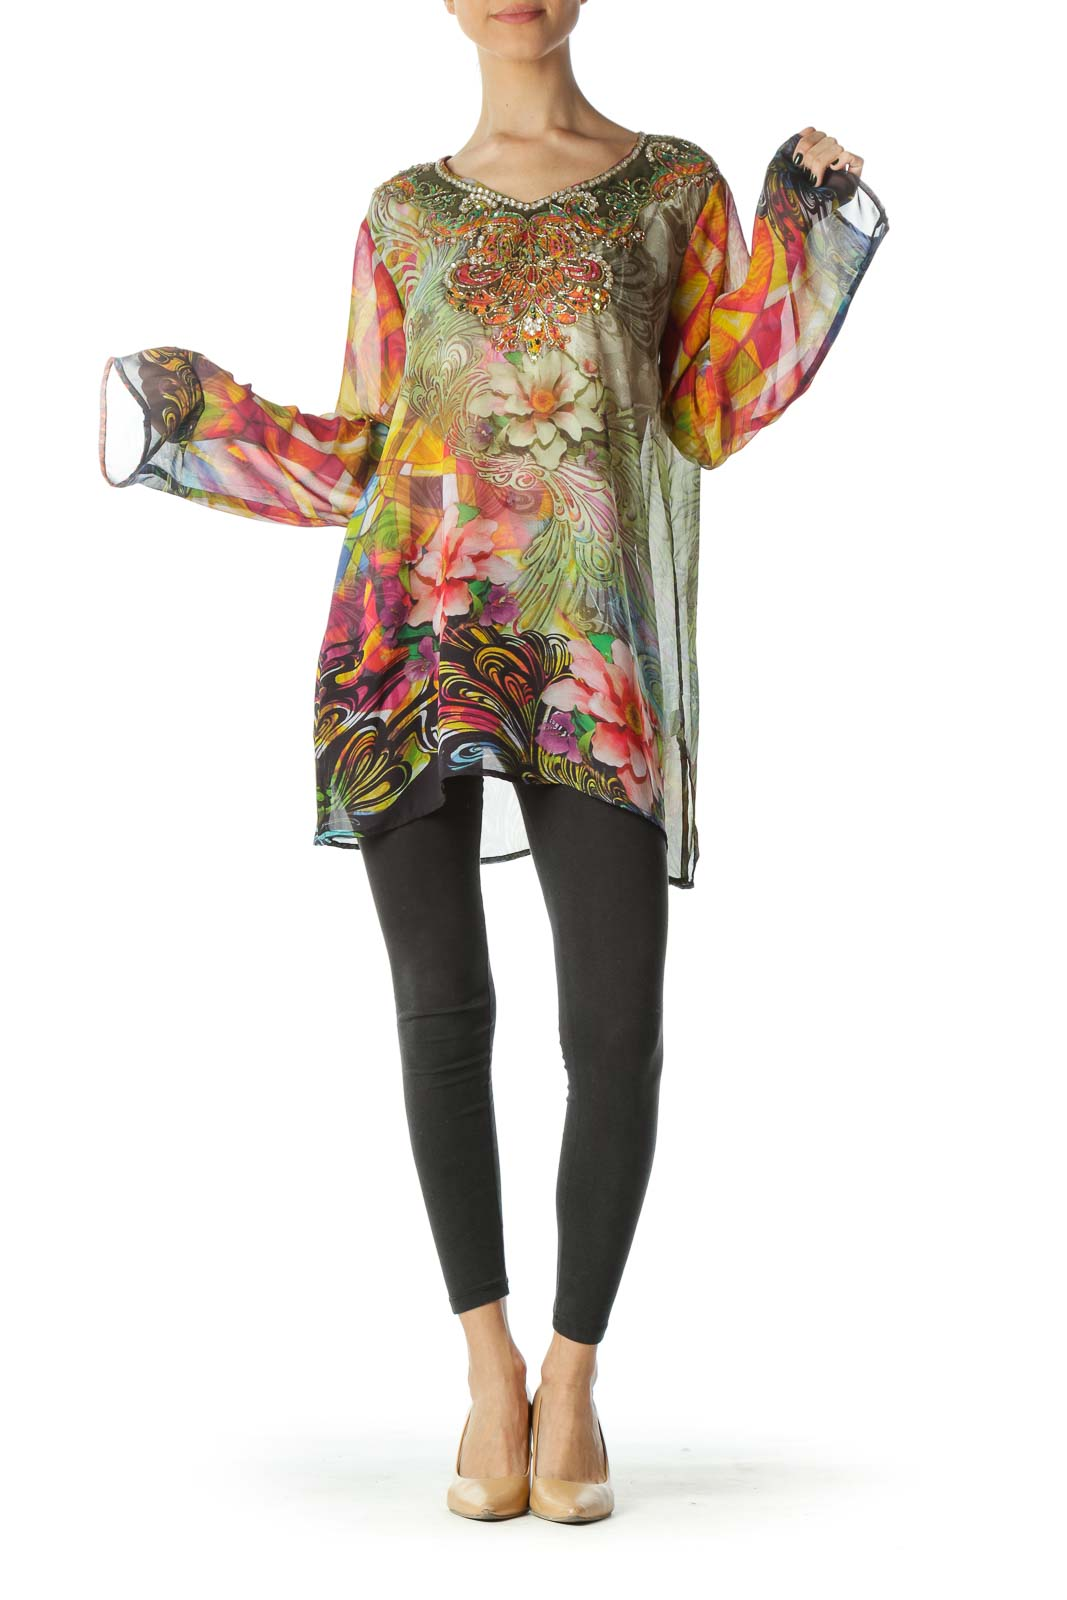 Multicolored Floral Print Embellished See-Through Tunic Top